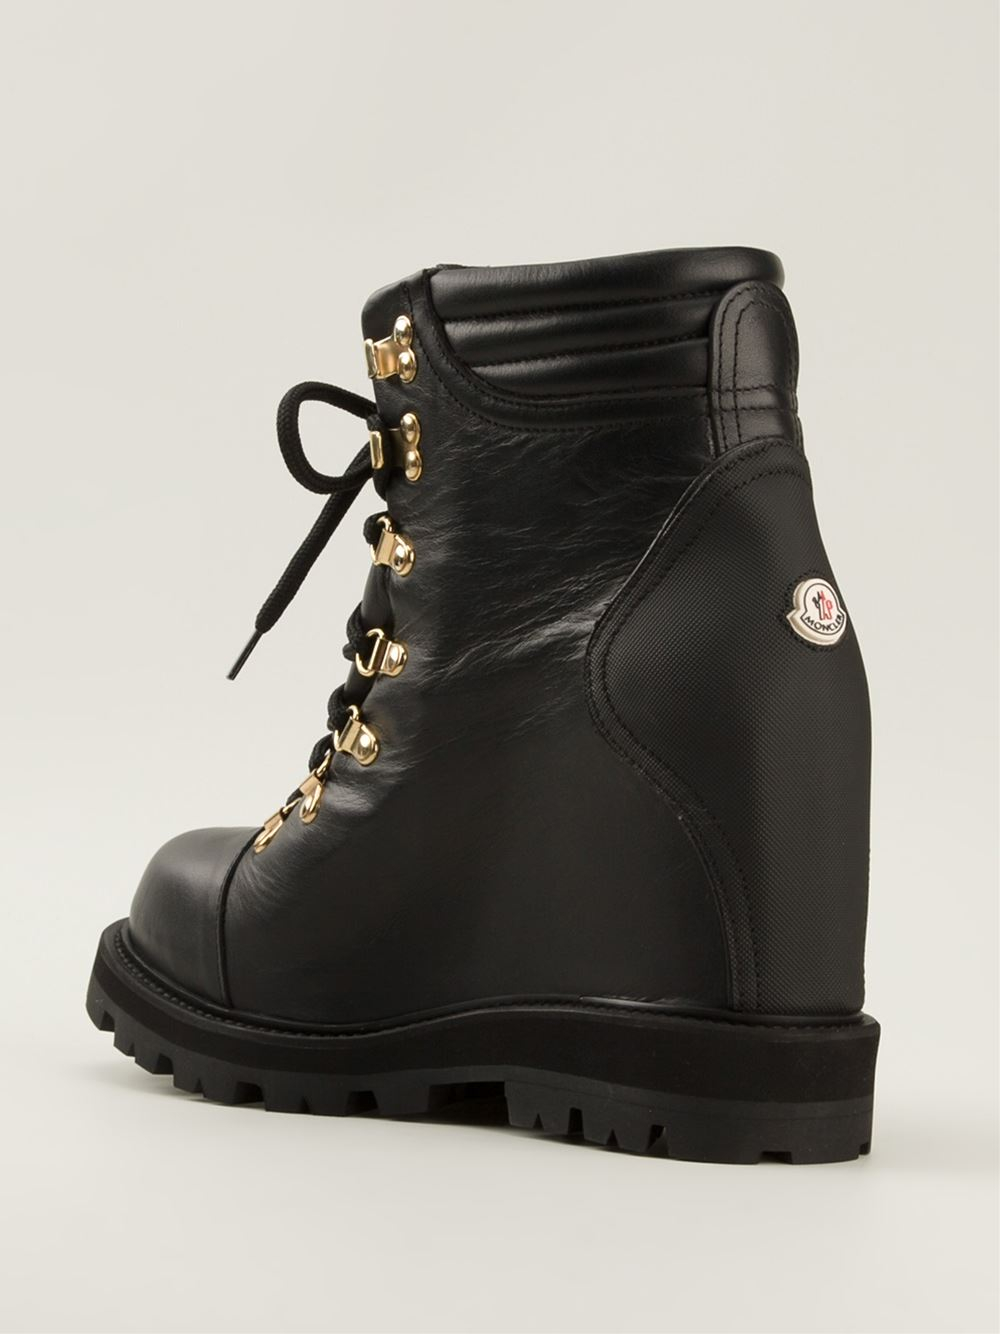 81dc1d4a7520 Lyst - Moncler Concealed Wedge Lace-Up Boots in Black